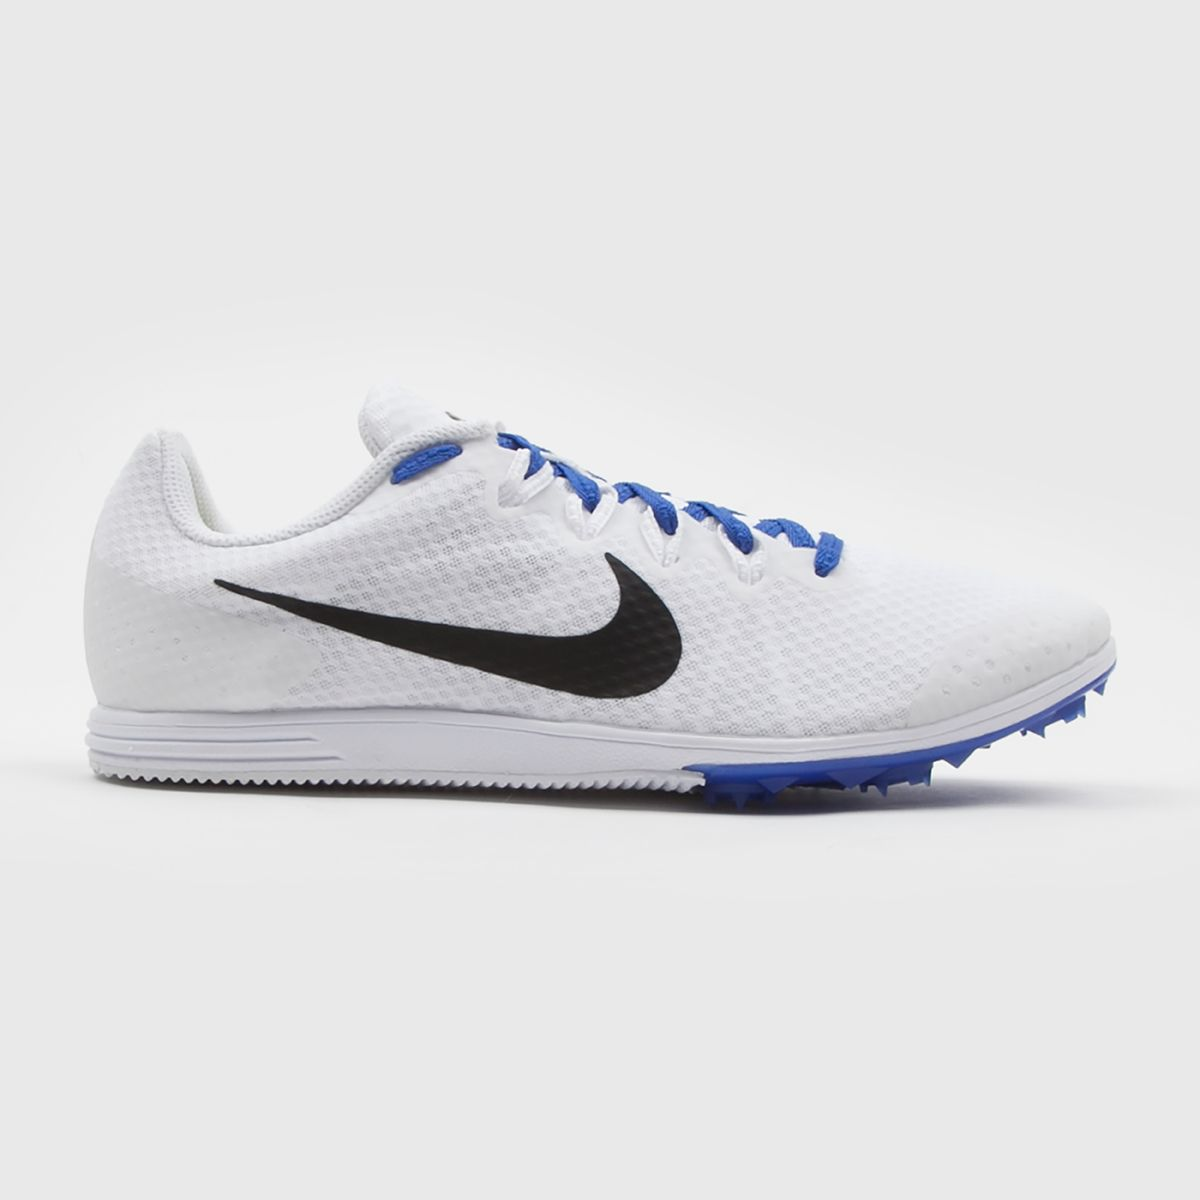 739a125101b6 Nike Zoom Rival D 9 Women s -  87.99 CDN The Nike Zoom Rival D 9 delivers